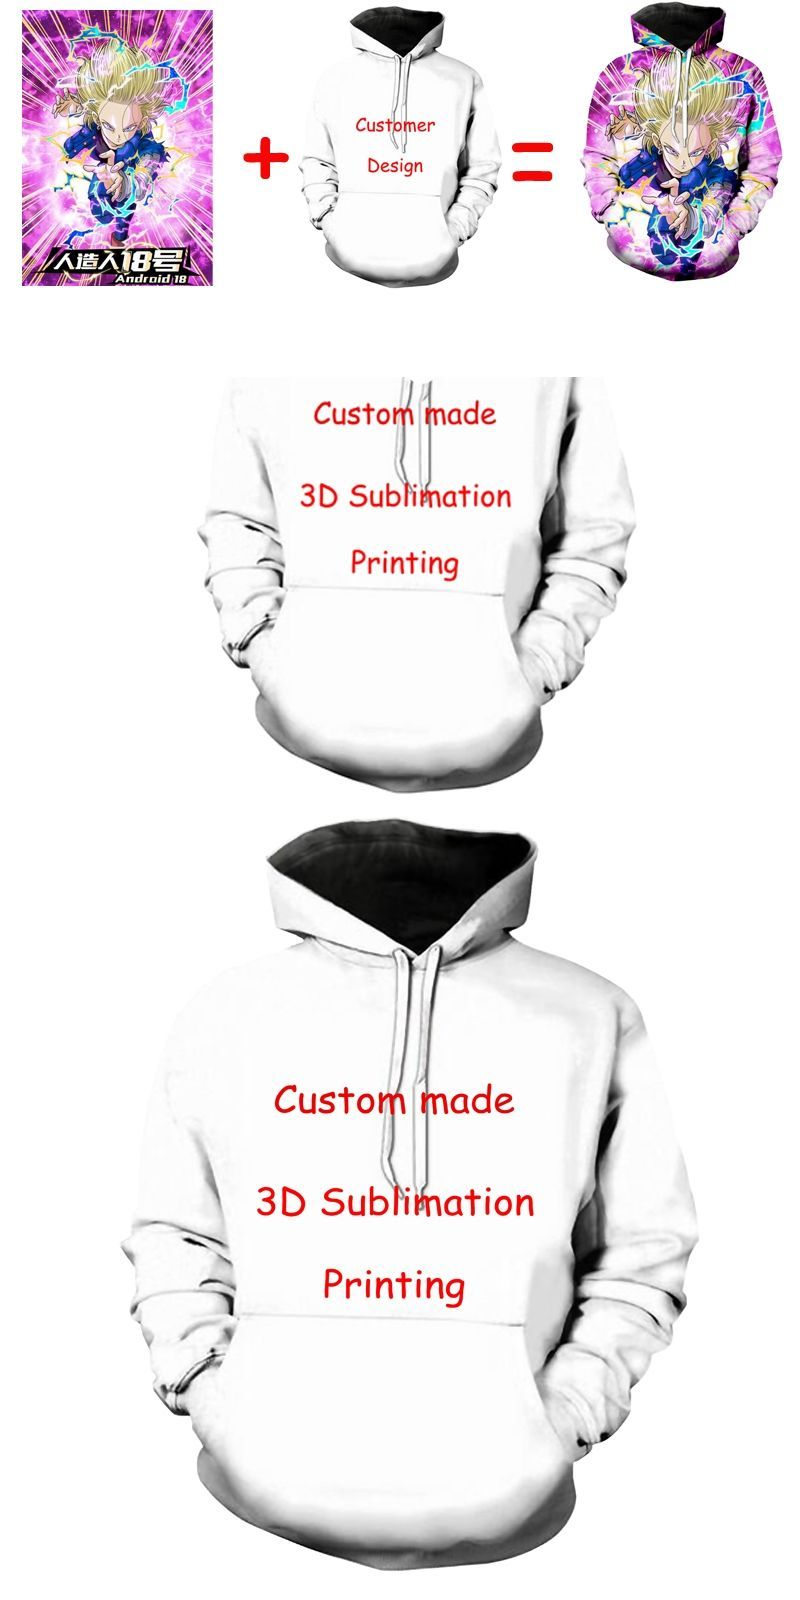 2382a0f1a Newest Create Your Own Customer Design Anime/Photo/Star/You Want/Singer  Pattern/DIY hoody 3D Print Sublimation hoodies #3dprintingdiy